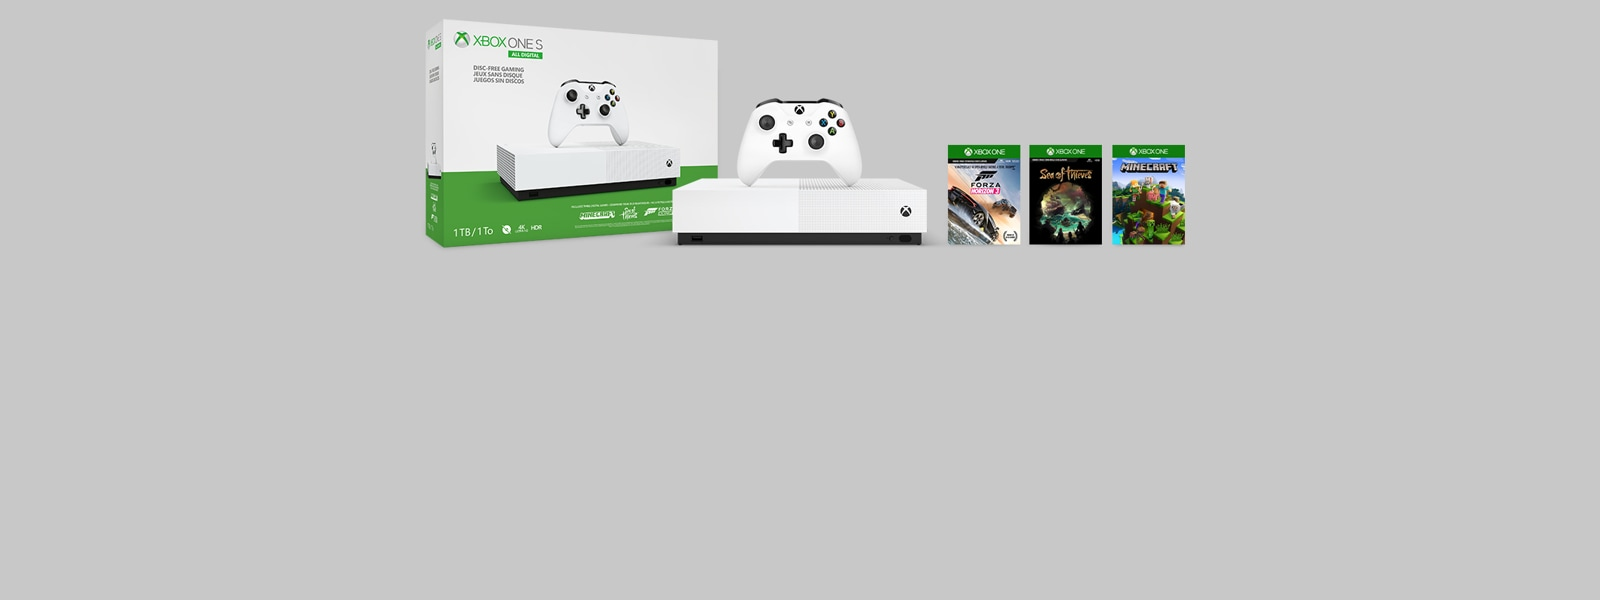 Nouvelle console Xbox One S All-Digital Edition affichant les titres de jeux pré-chargés : Forza Horizon 3, Sea of Thieves, Minecraft